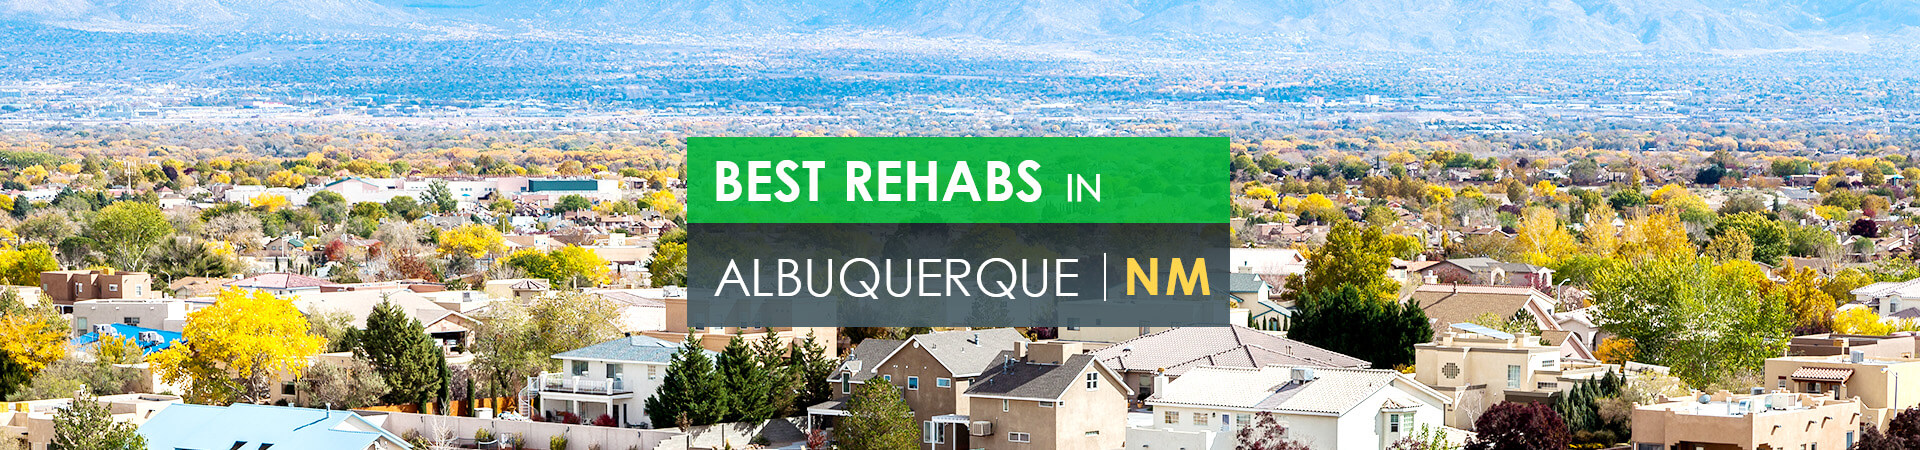 Best rehabs in Albuquerque, NM